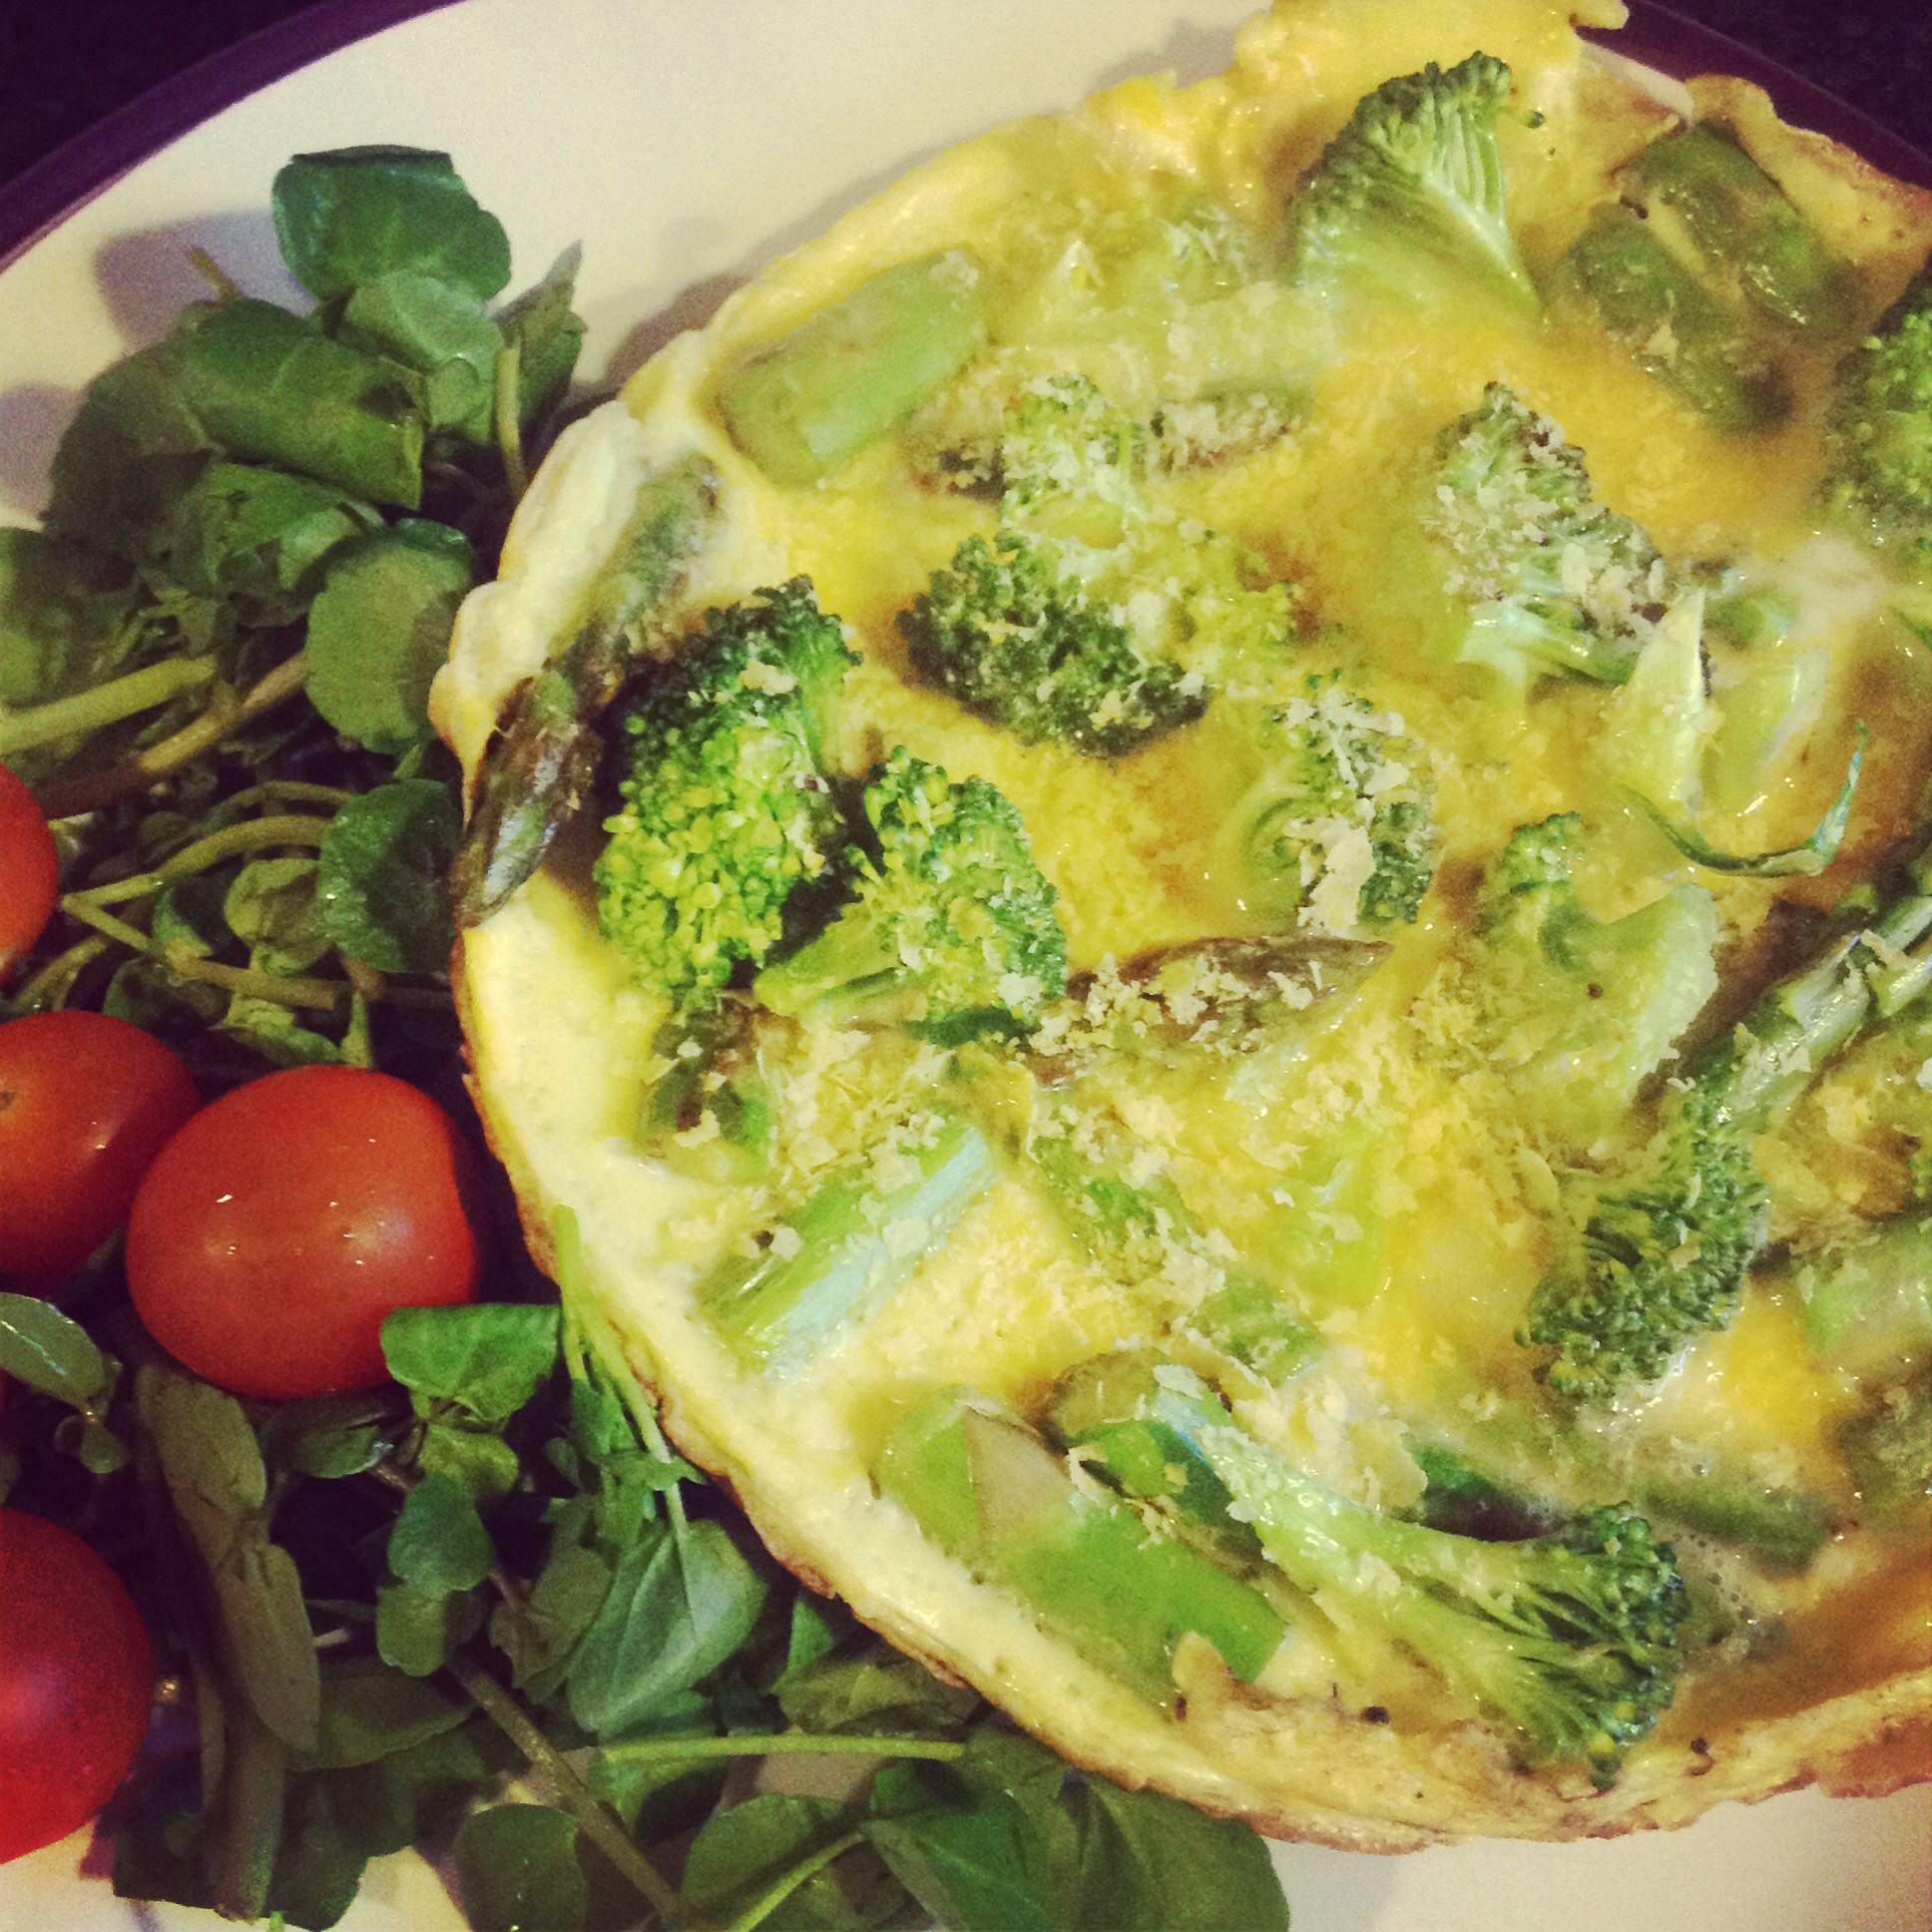 Omelet with cauliflower or broccoli and greens